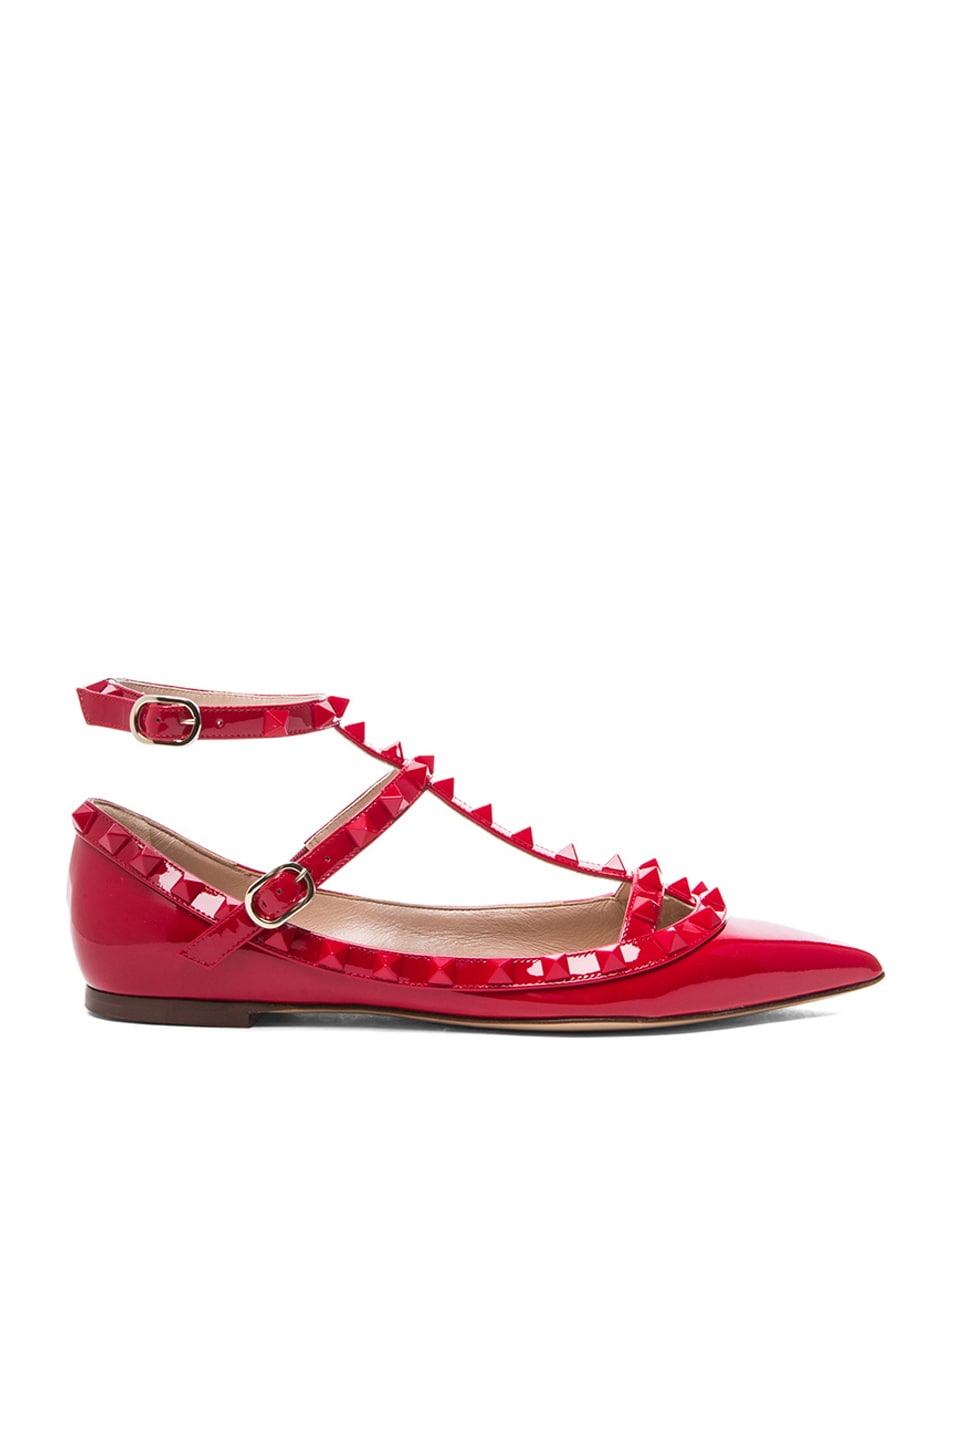 Image 1 of Valentino Rockstud Punkouture Patent Cage Flats in Red